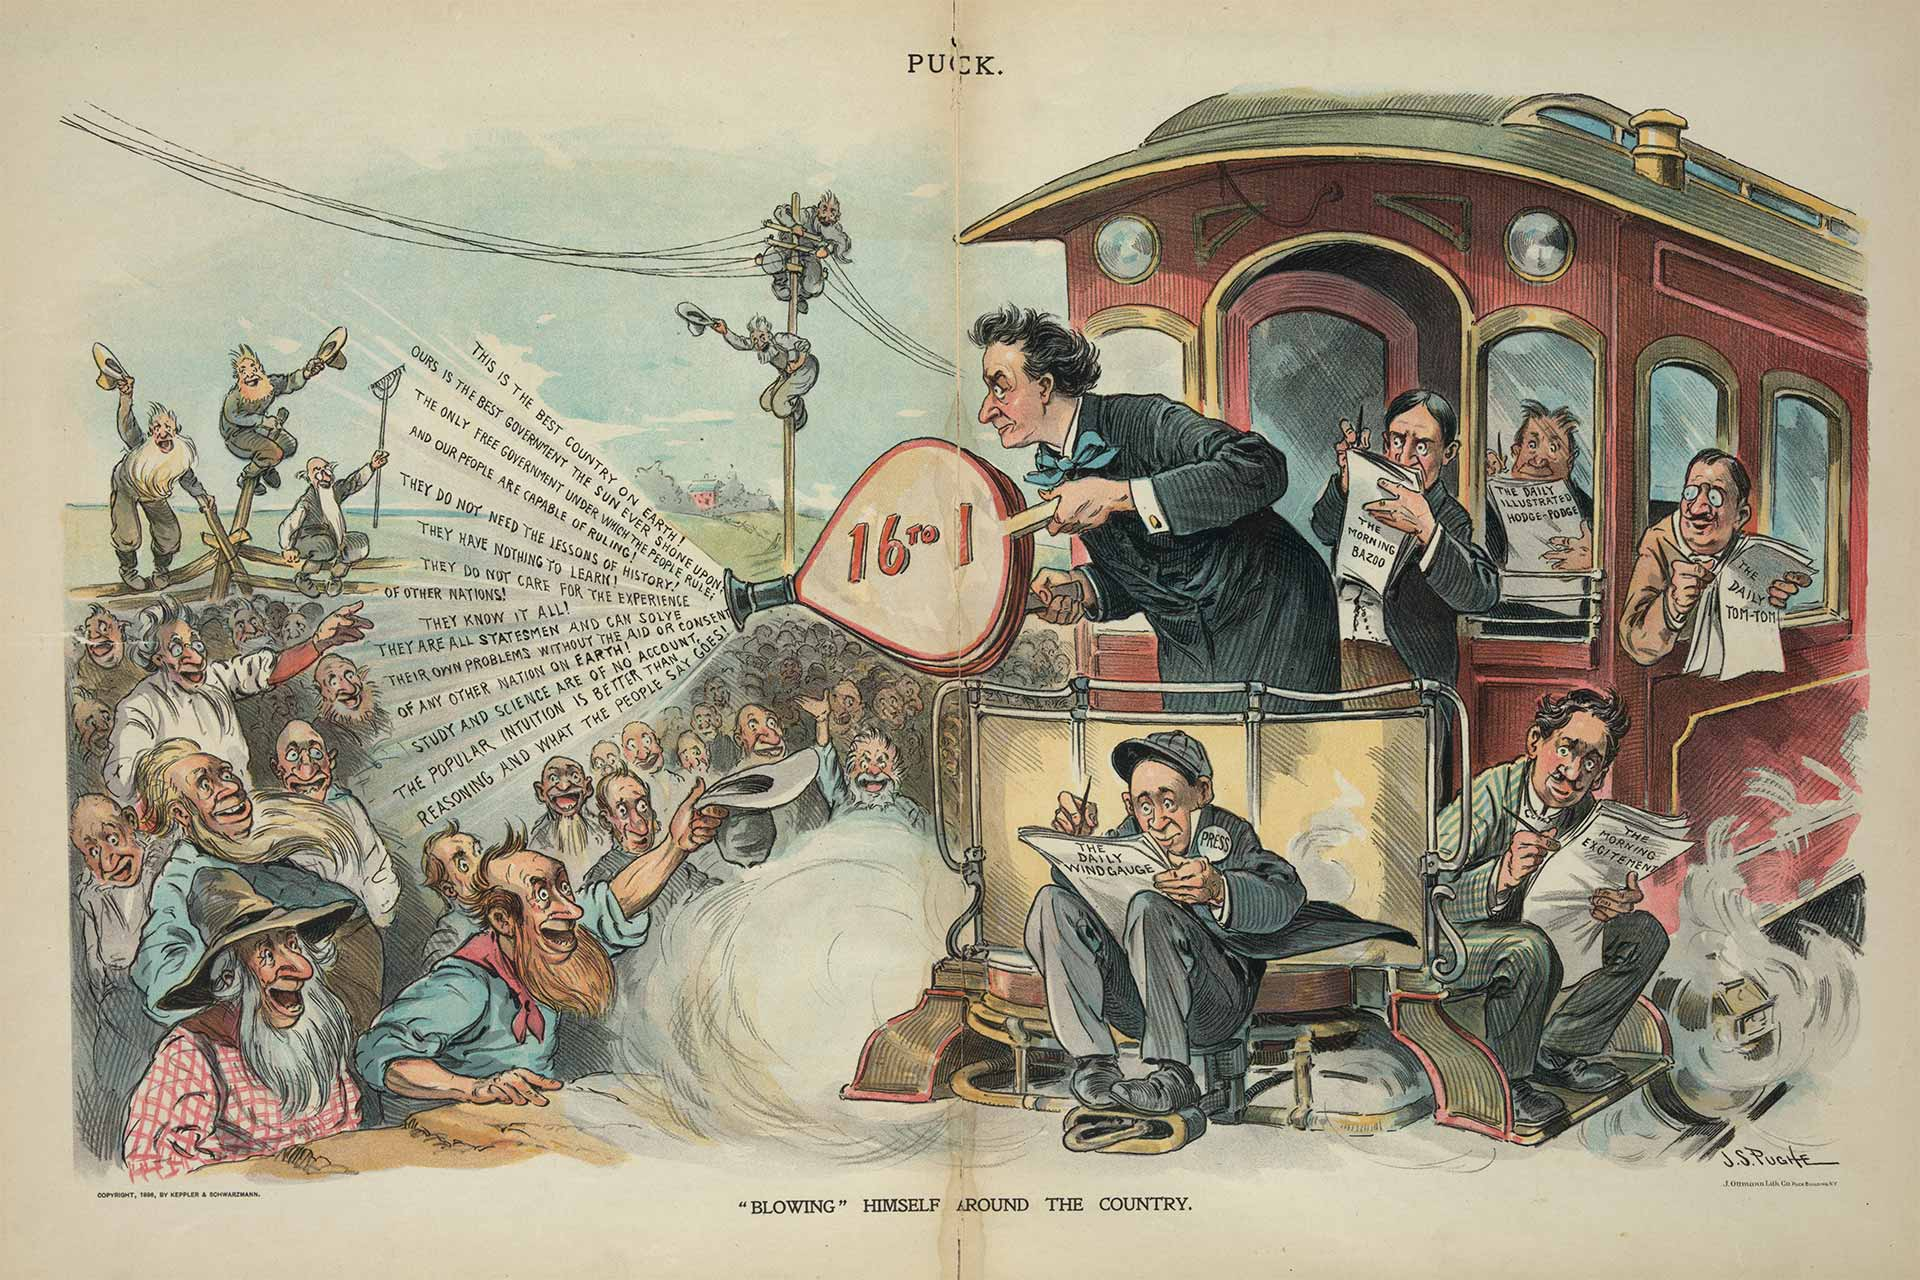 Political cartoon of man in a suit on back of train fanning out campaign messages to a throng of excited bystanders